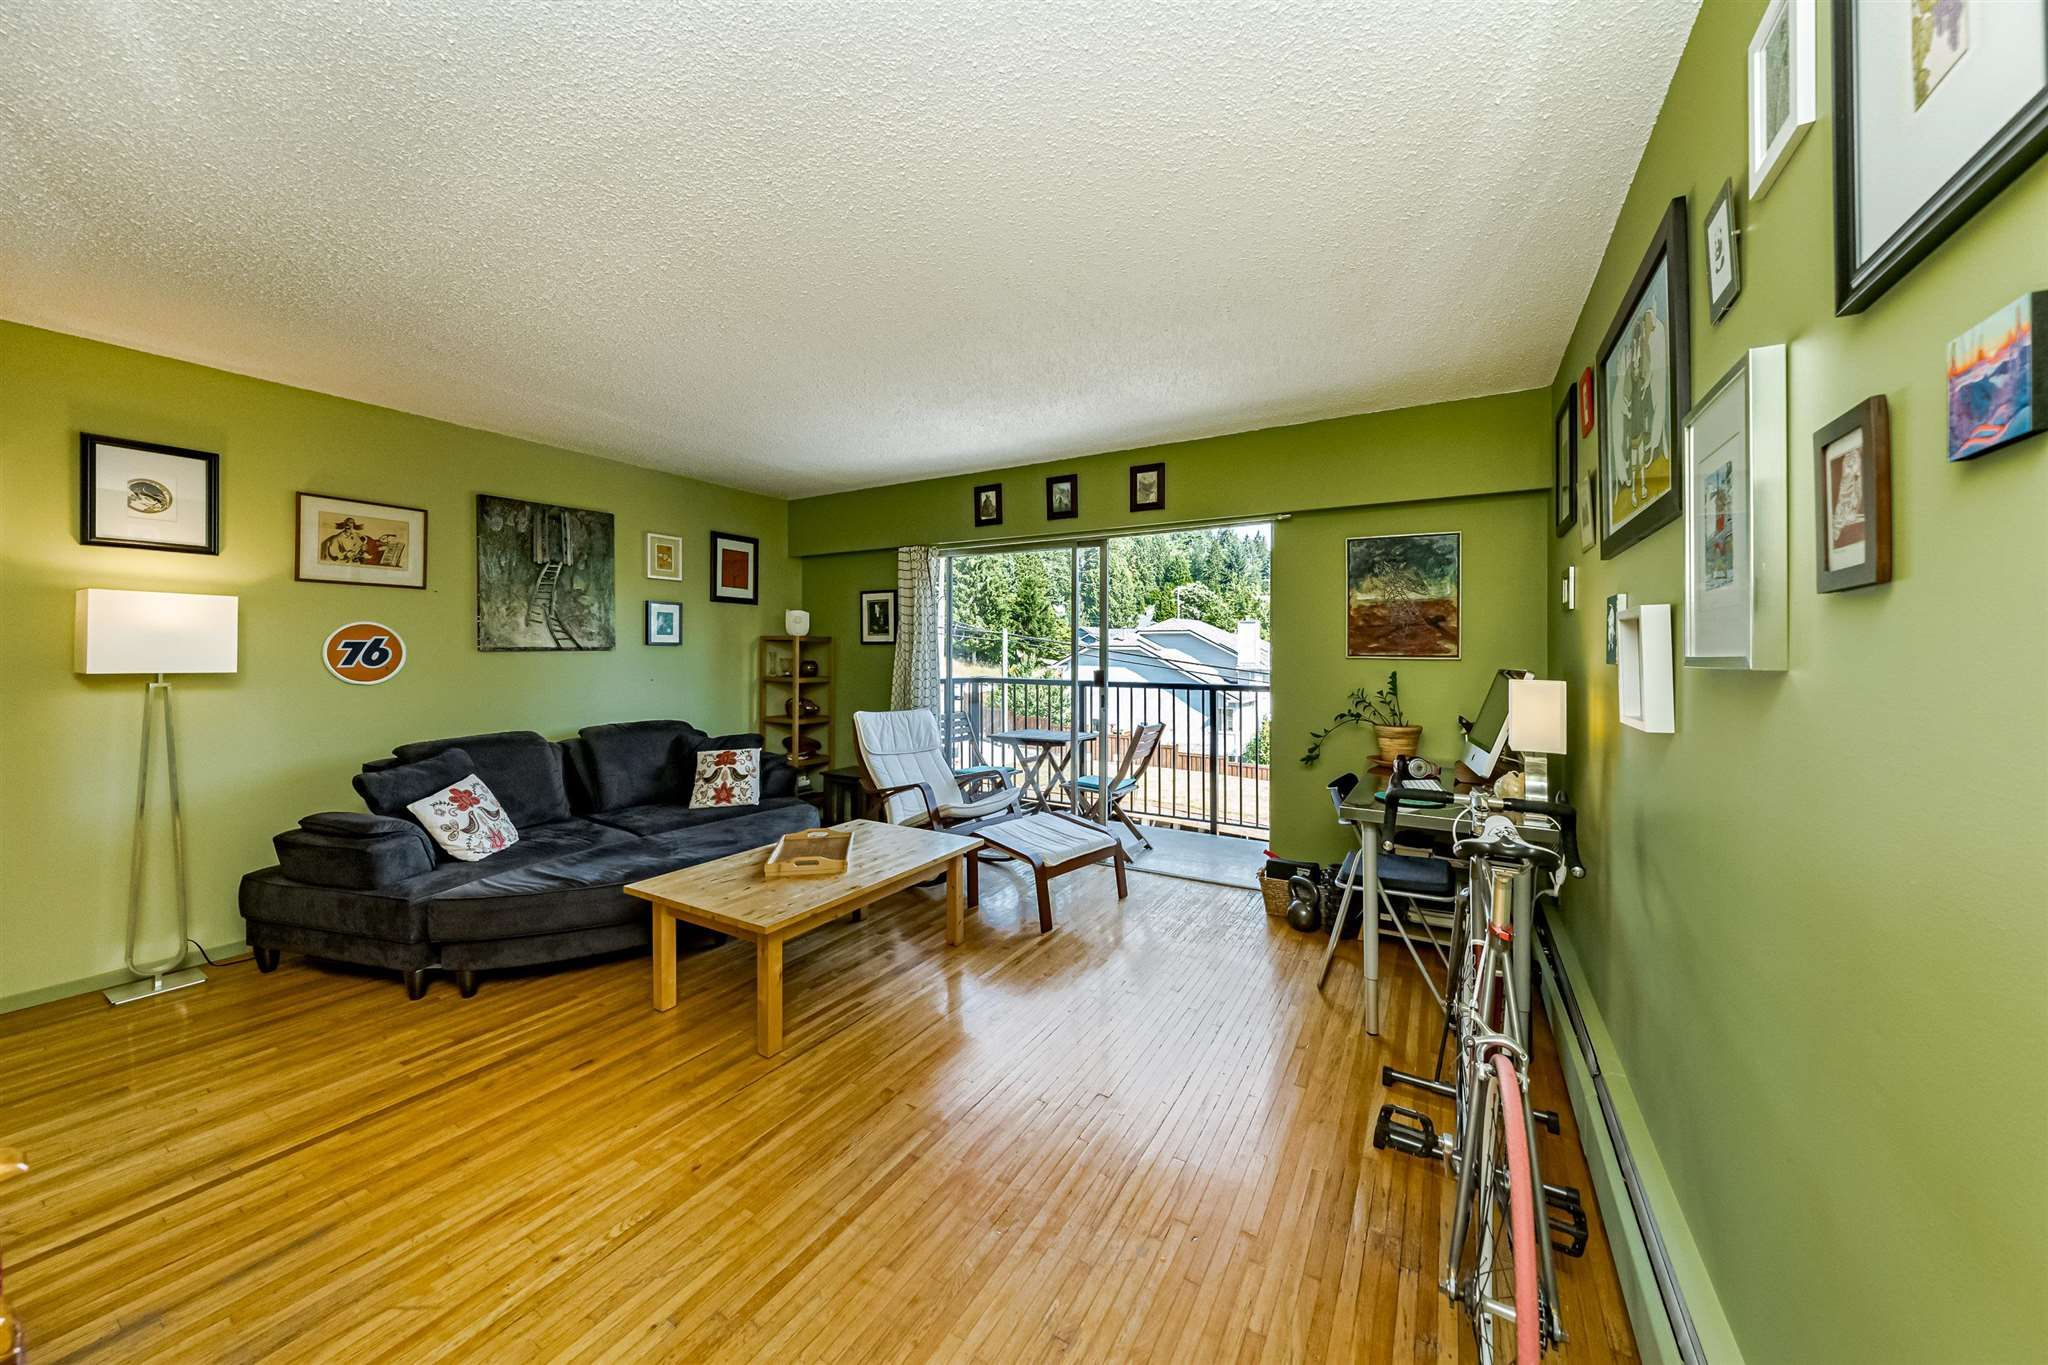 Photo 7: Photos: 57 2002 ST JOHNS Street in Port Moody: Port Moody Centre Condo for sale : MLS®# R2602252